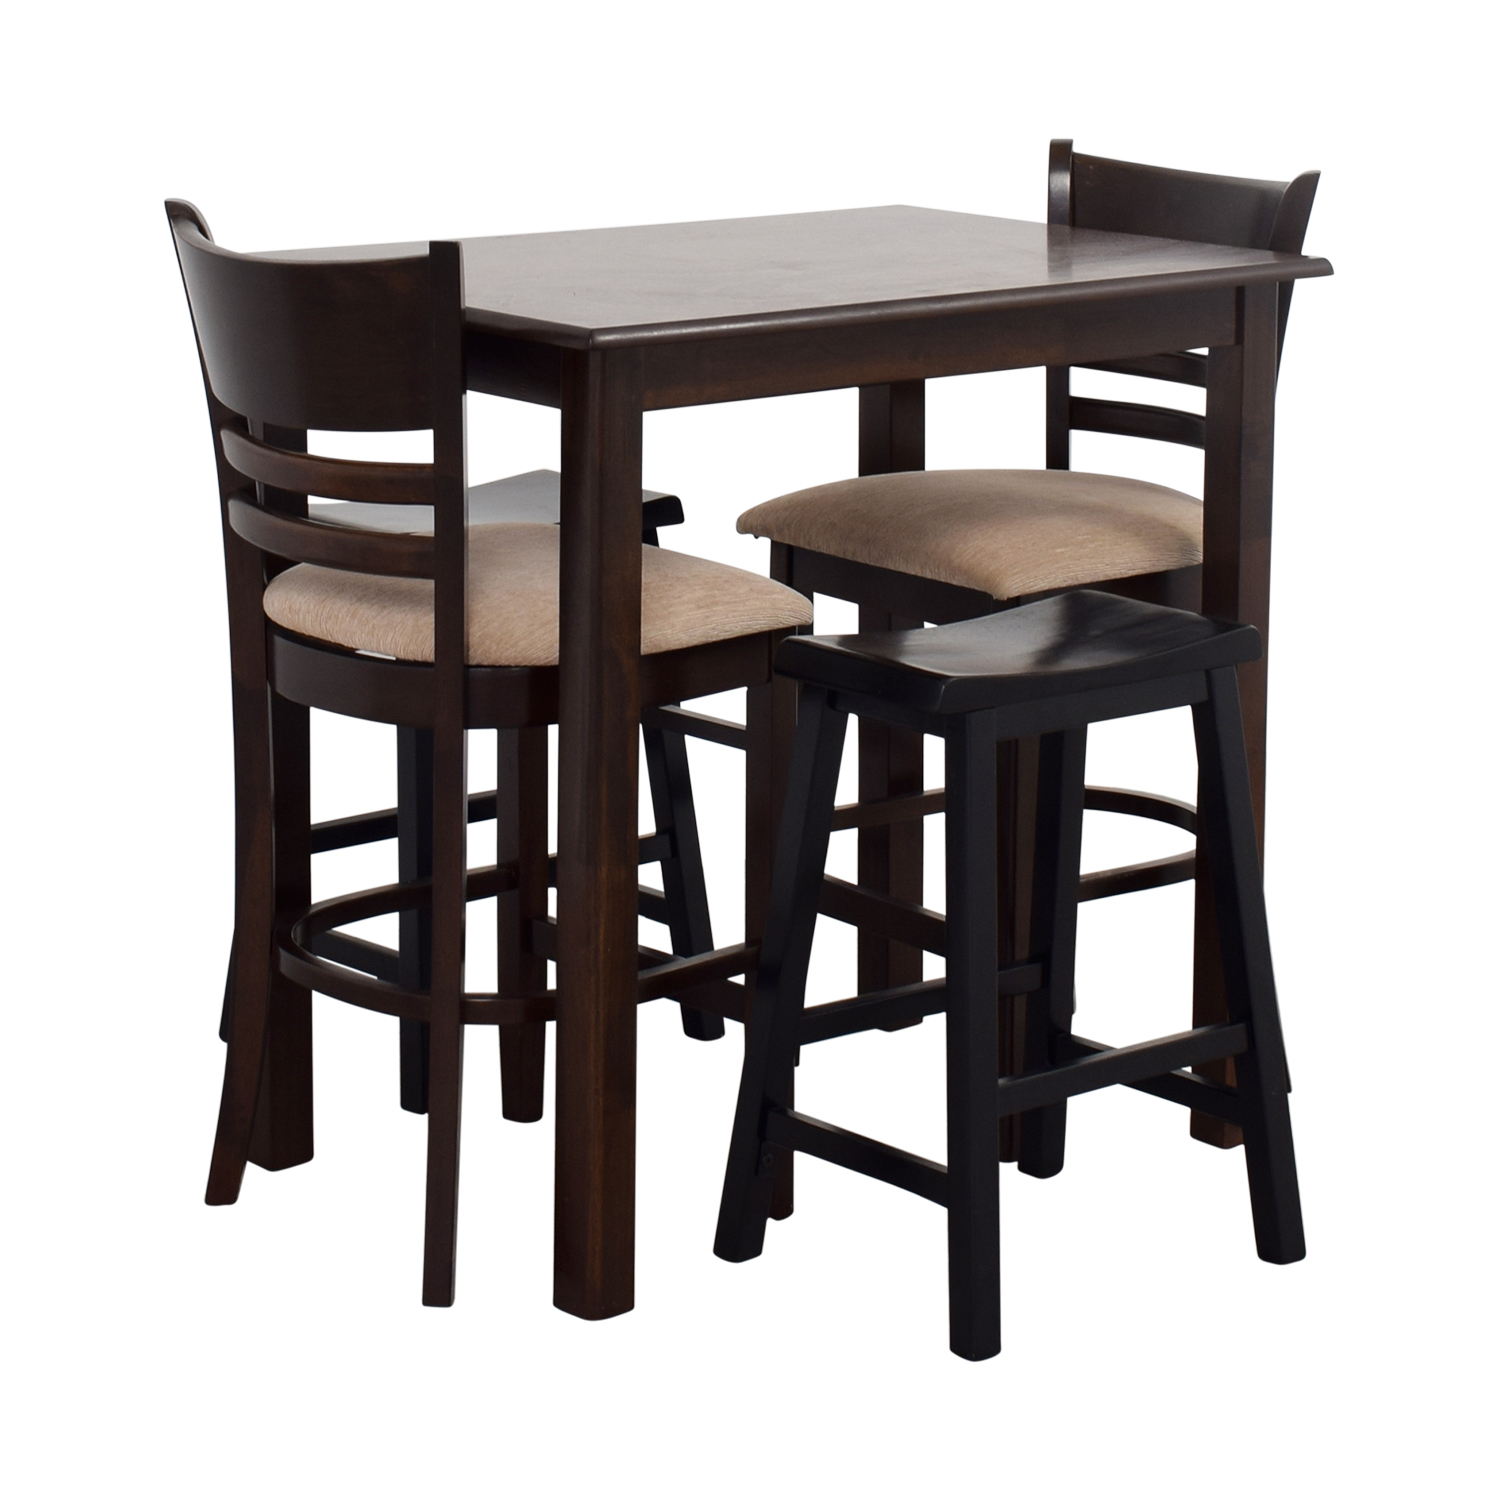 Bar Stools And Tables: Simple Bar Table With Two Chairs And Two Stools